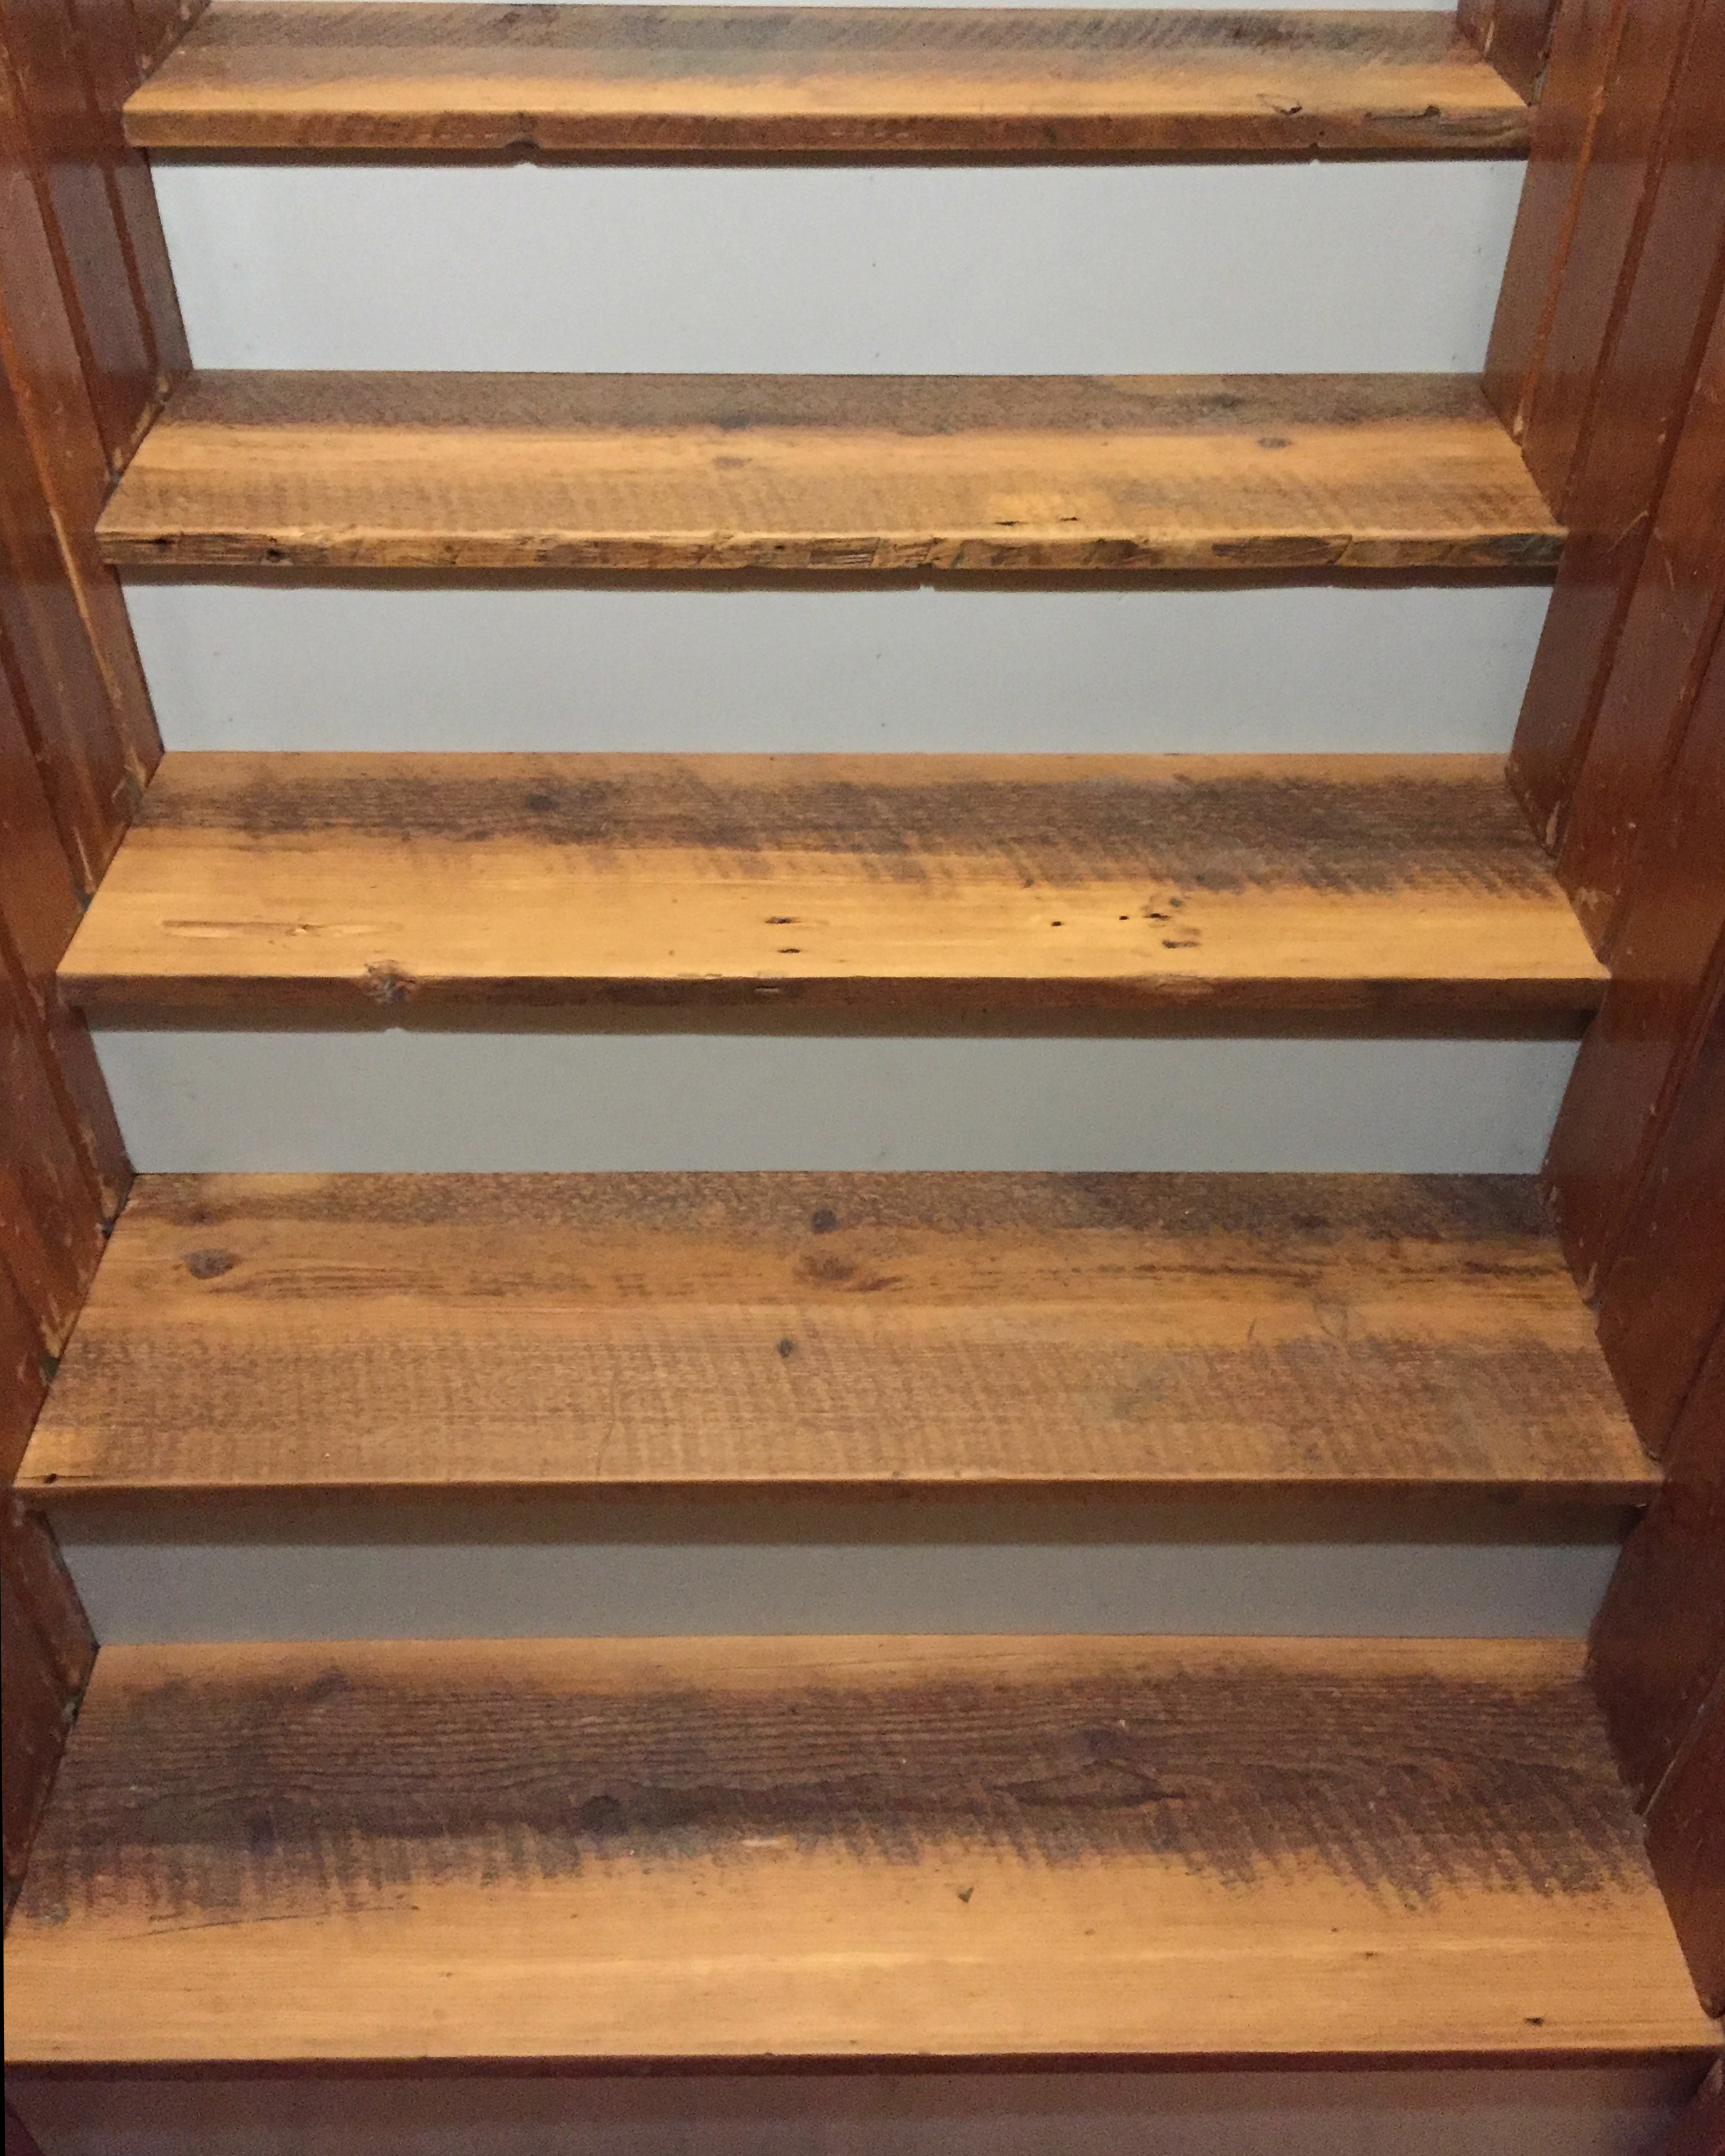 Reclaimed Wood Stair Treads_Kemmco_Tom Kemmer Contractor Installer Fargo Moorhead MN ND.jpg